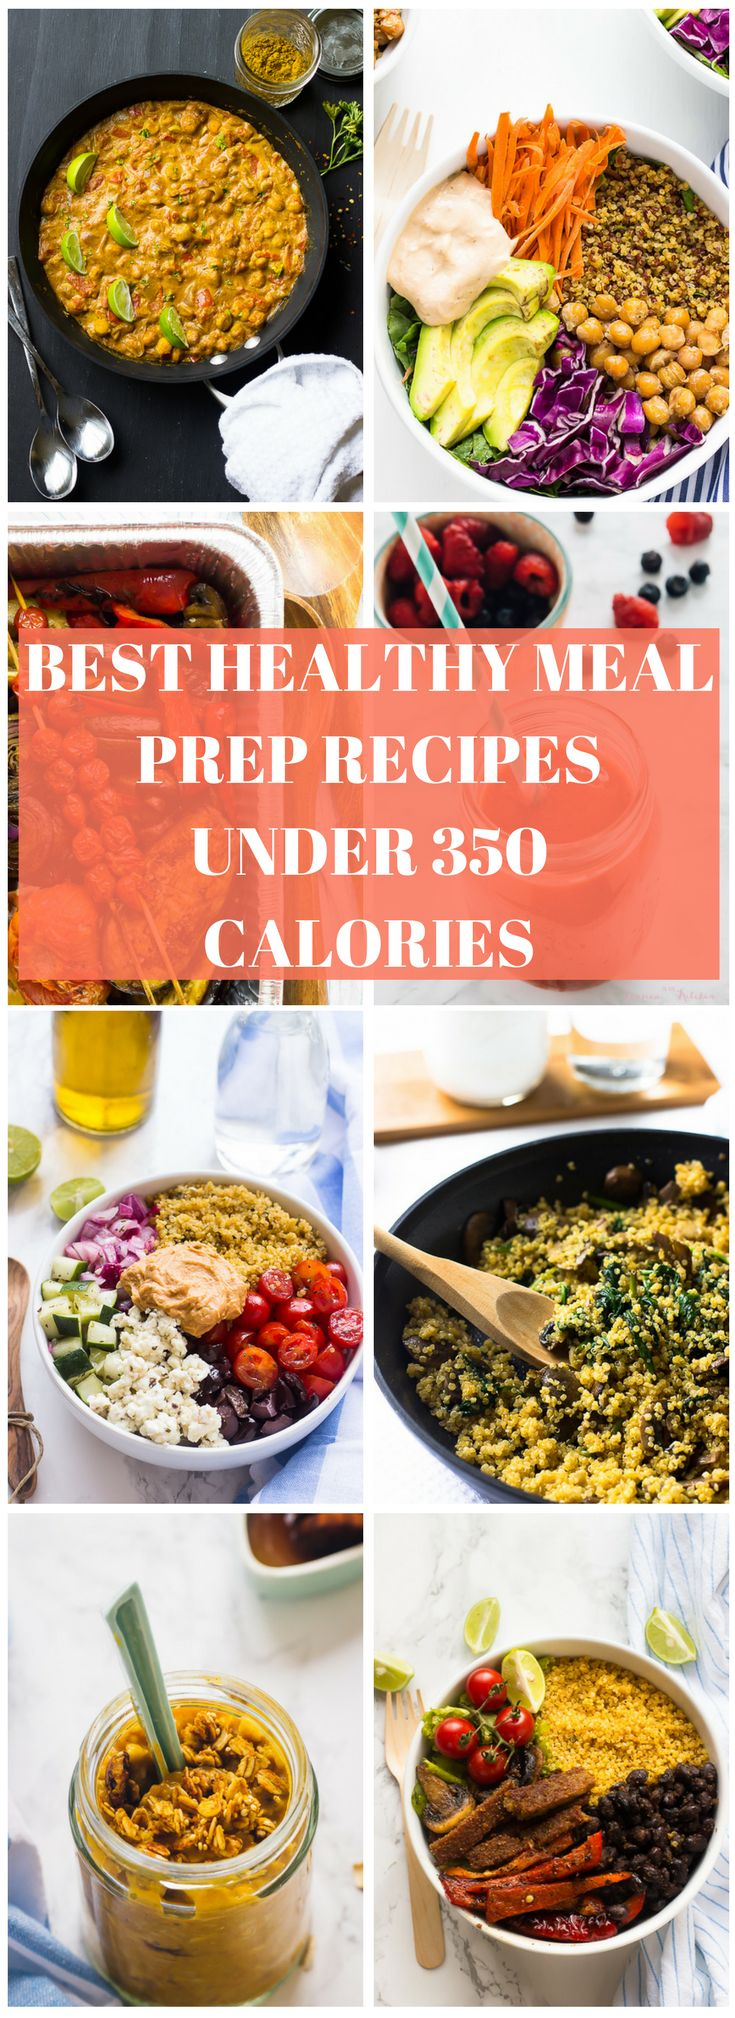 Our best clean eating Healthy Meal Prep Recipes Under 350 Calories to get your through the week, plus meal prep and meal planning 101 tips! All vegetarian! via jessicainthekitchen,com